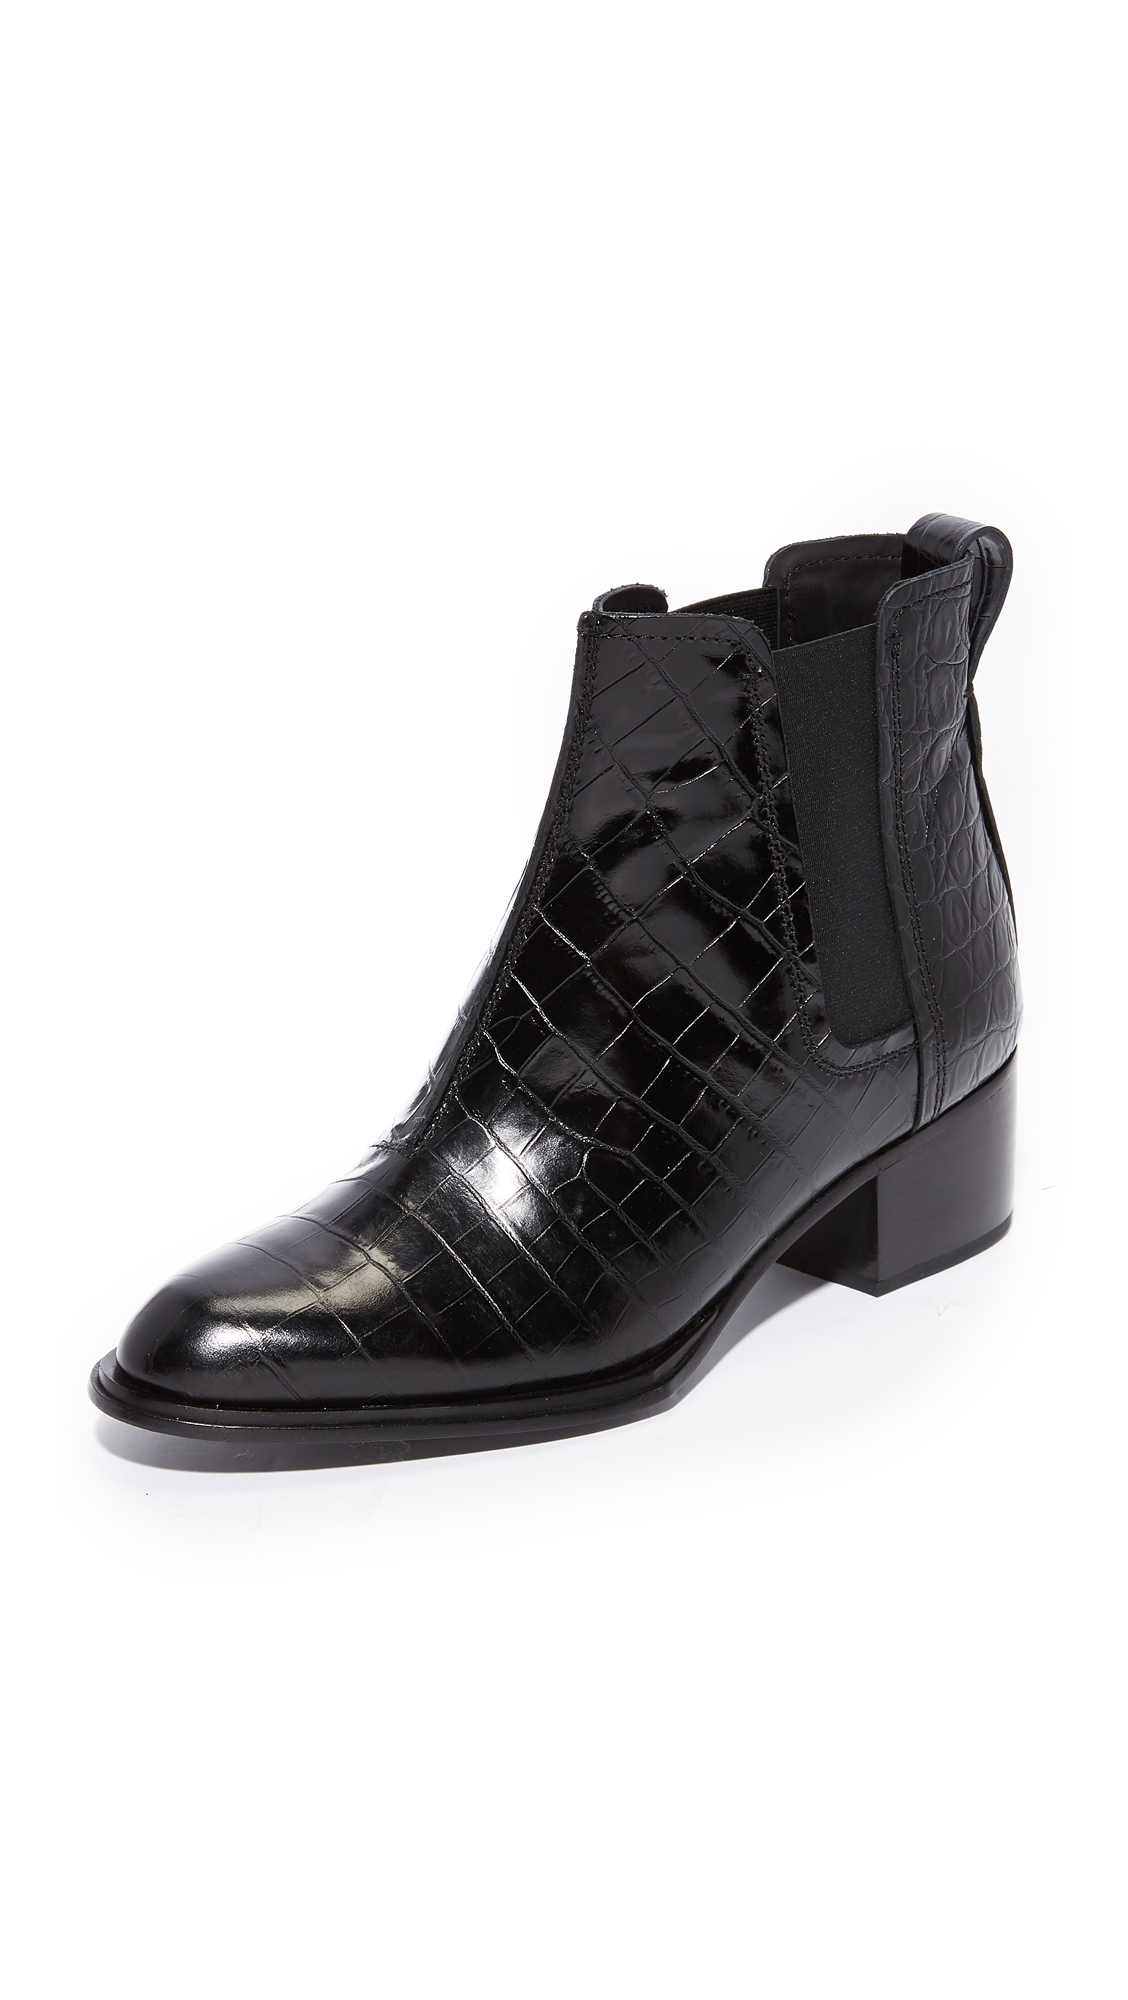 Rag & Bone Walker II Booties - Black